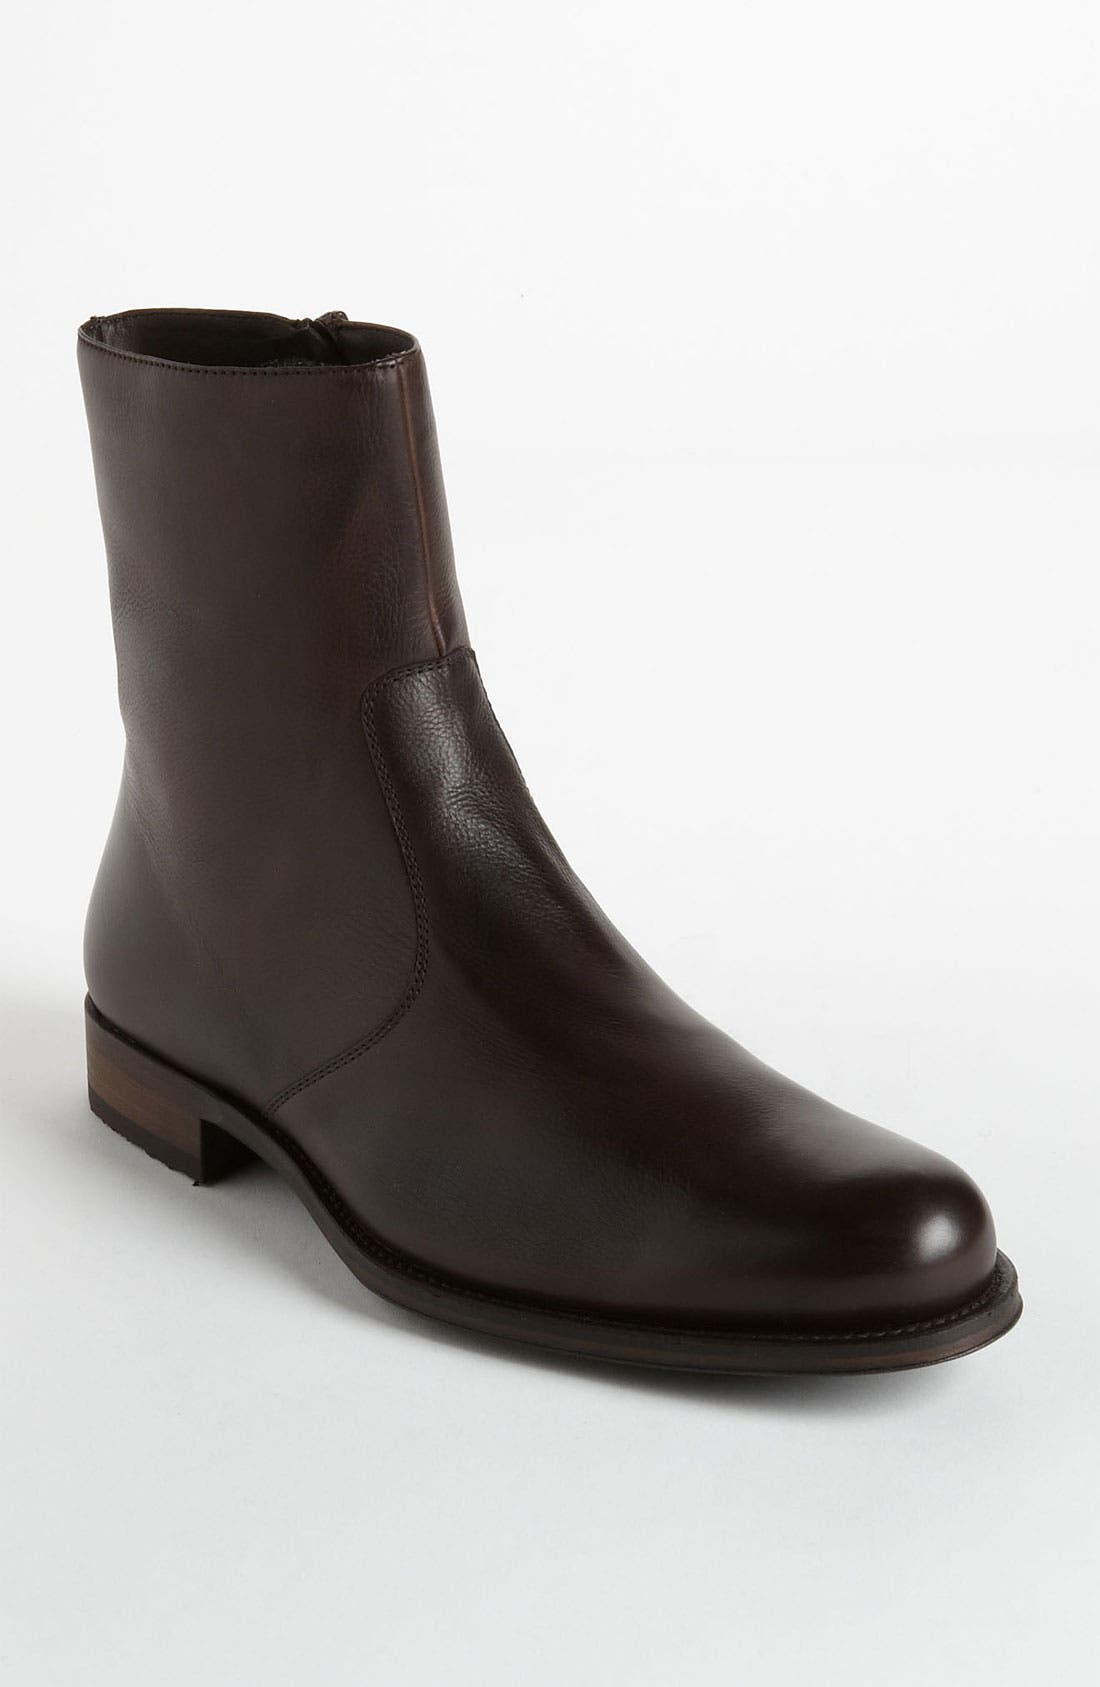 Main Image - Magnanni 'Sarto' Side Zip Boot